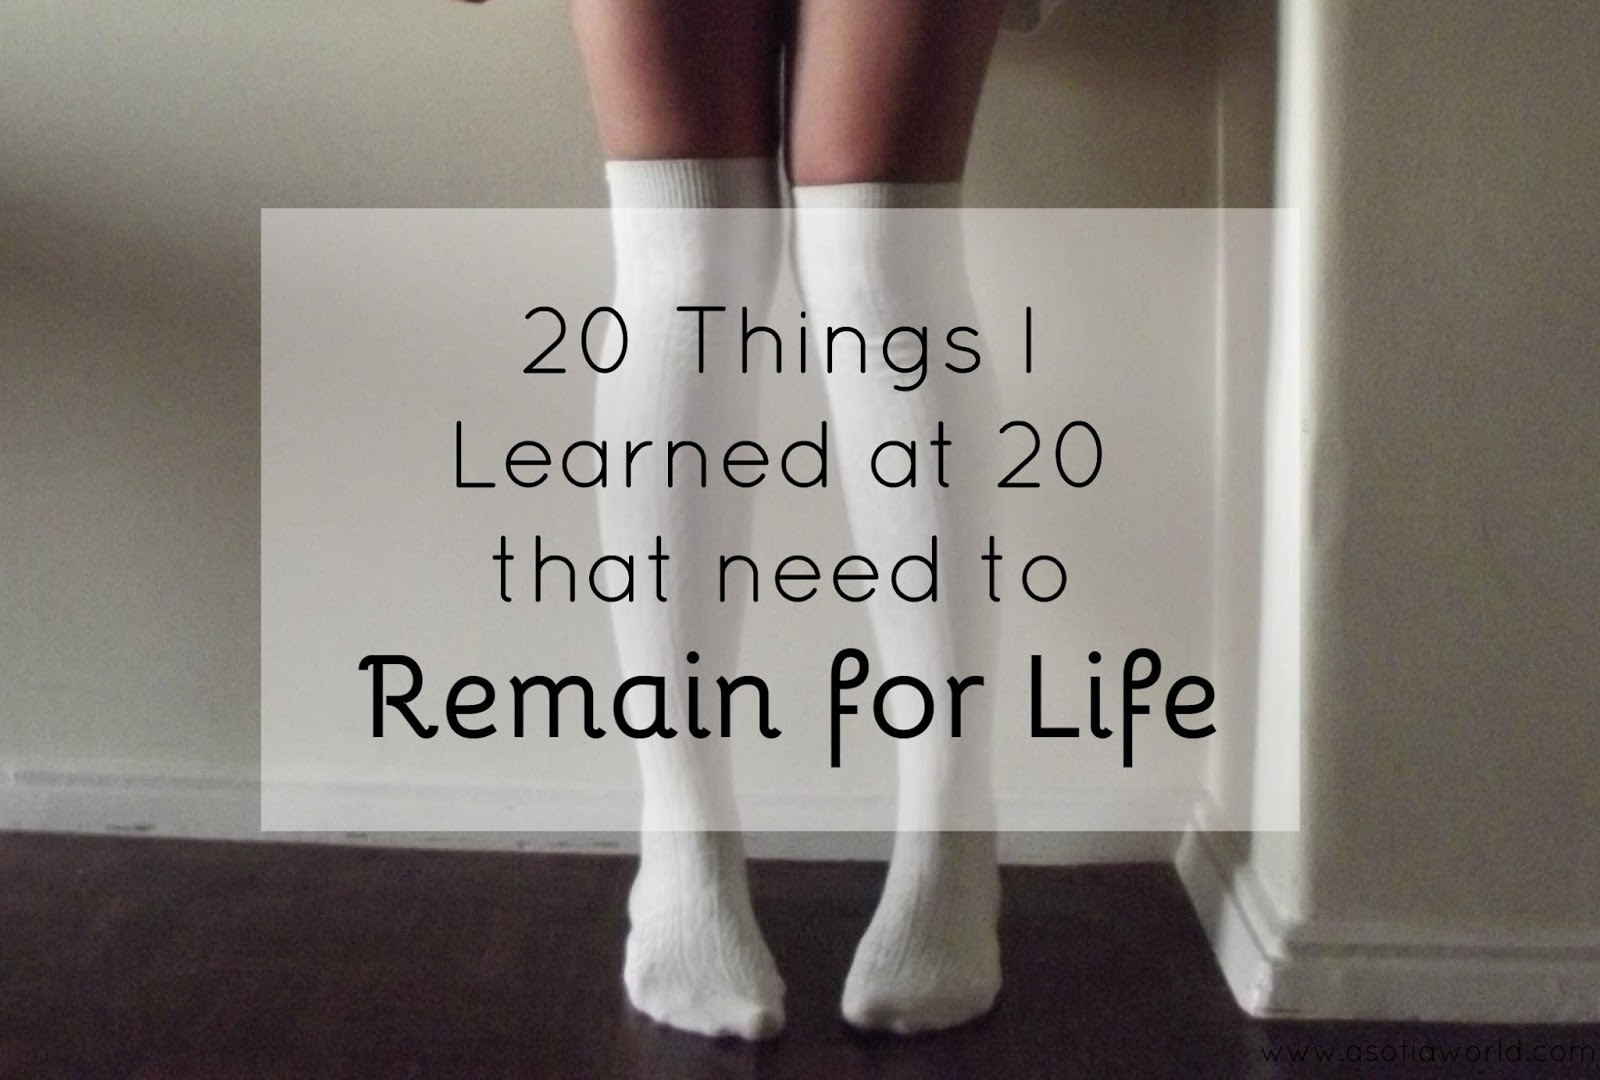 20 Things I Learned at 20.